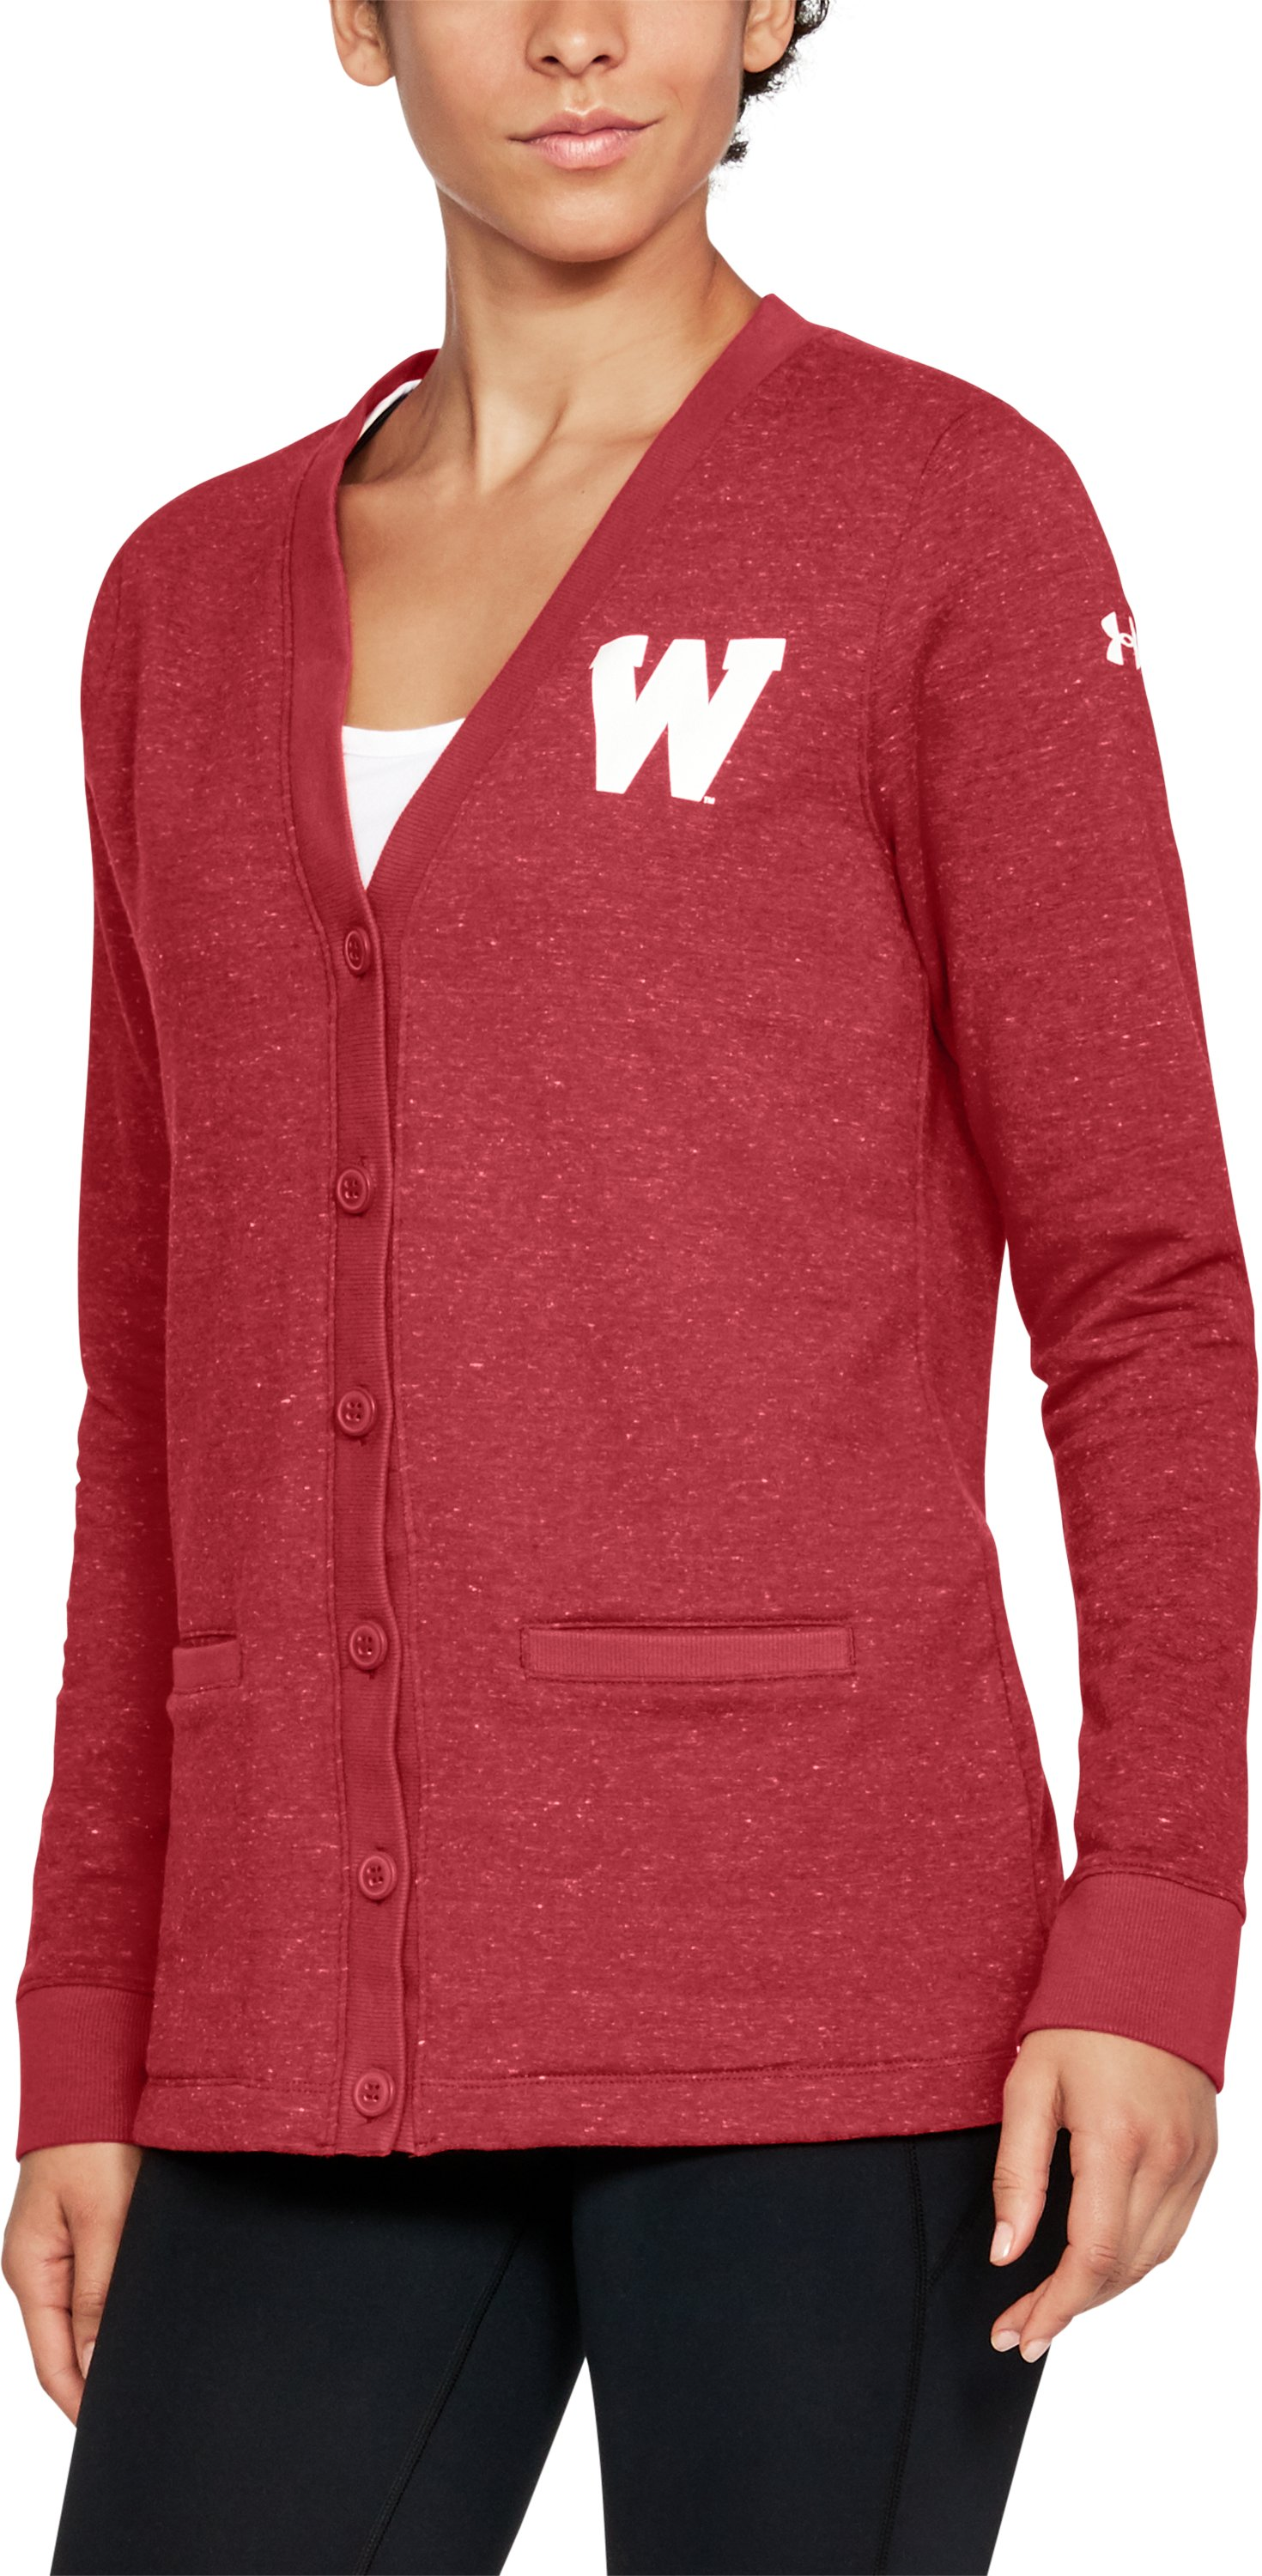 "iconic hoodies Women's Wisconsin UA Iconic Cardigan It's extrememly comfortable (sweatshirt material) yet looks like a nice sweater....The sizing is slightly large, which I like because it's longer and fits more like a ""boyfriend"" sweater."